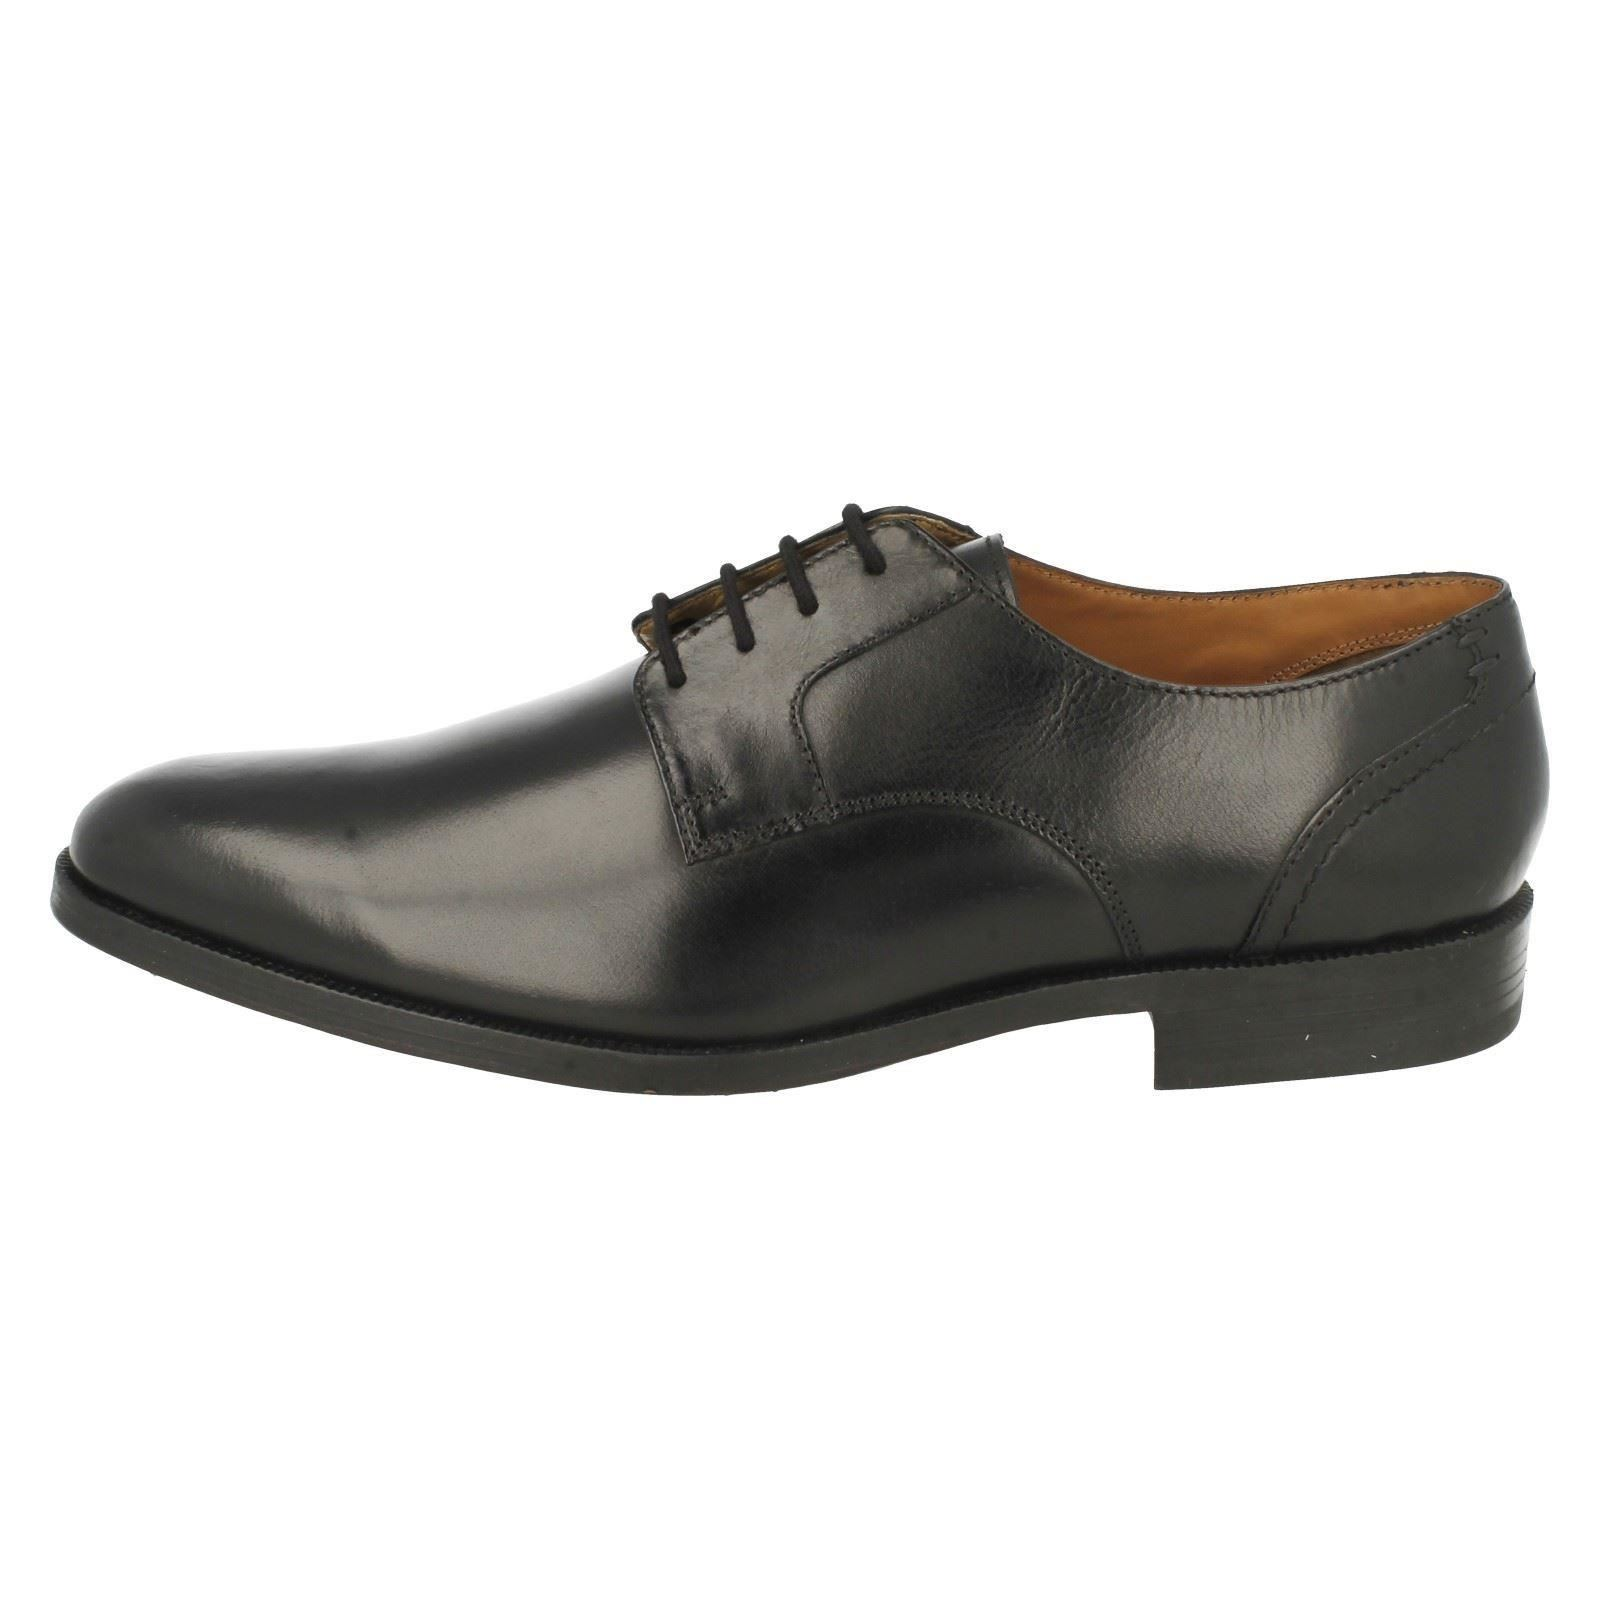 Clarks Mens Formal Lace Up Shoes Hatche Spring